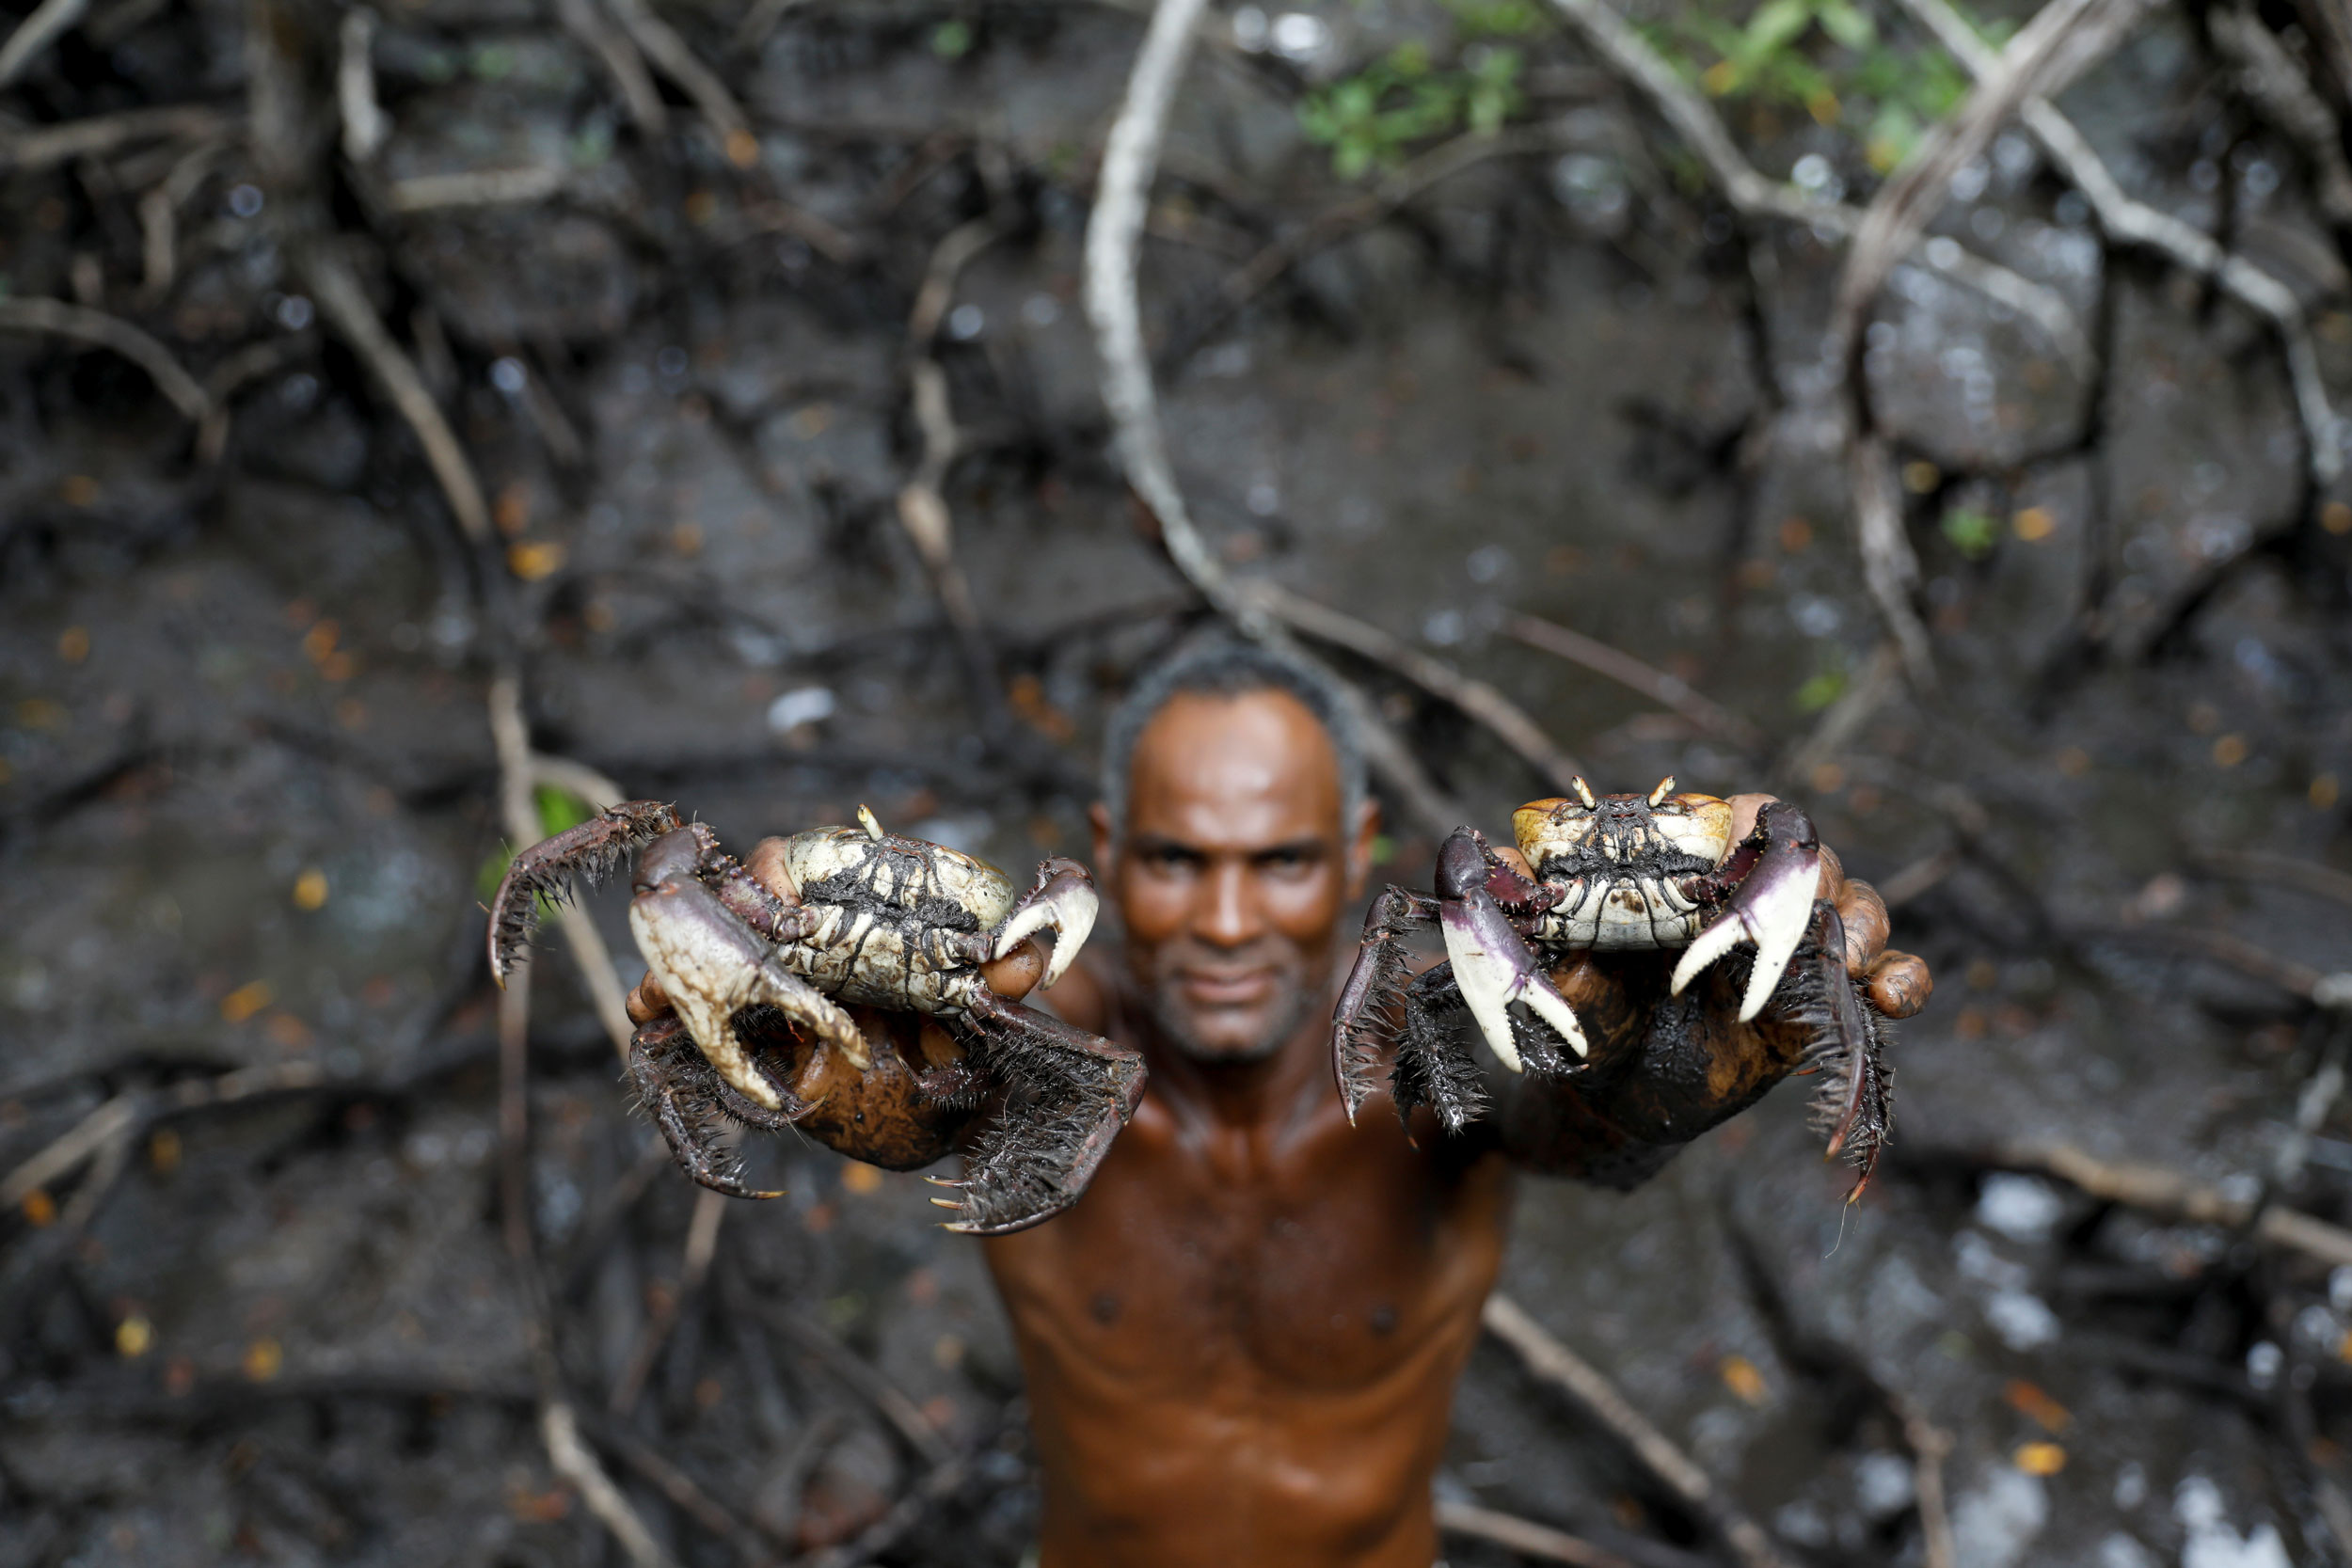 A man is shown without a shirt on holding a crab in each hand above his head.